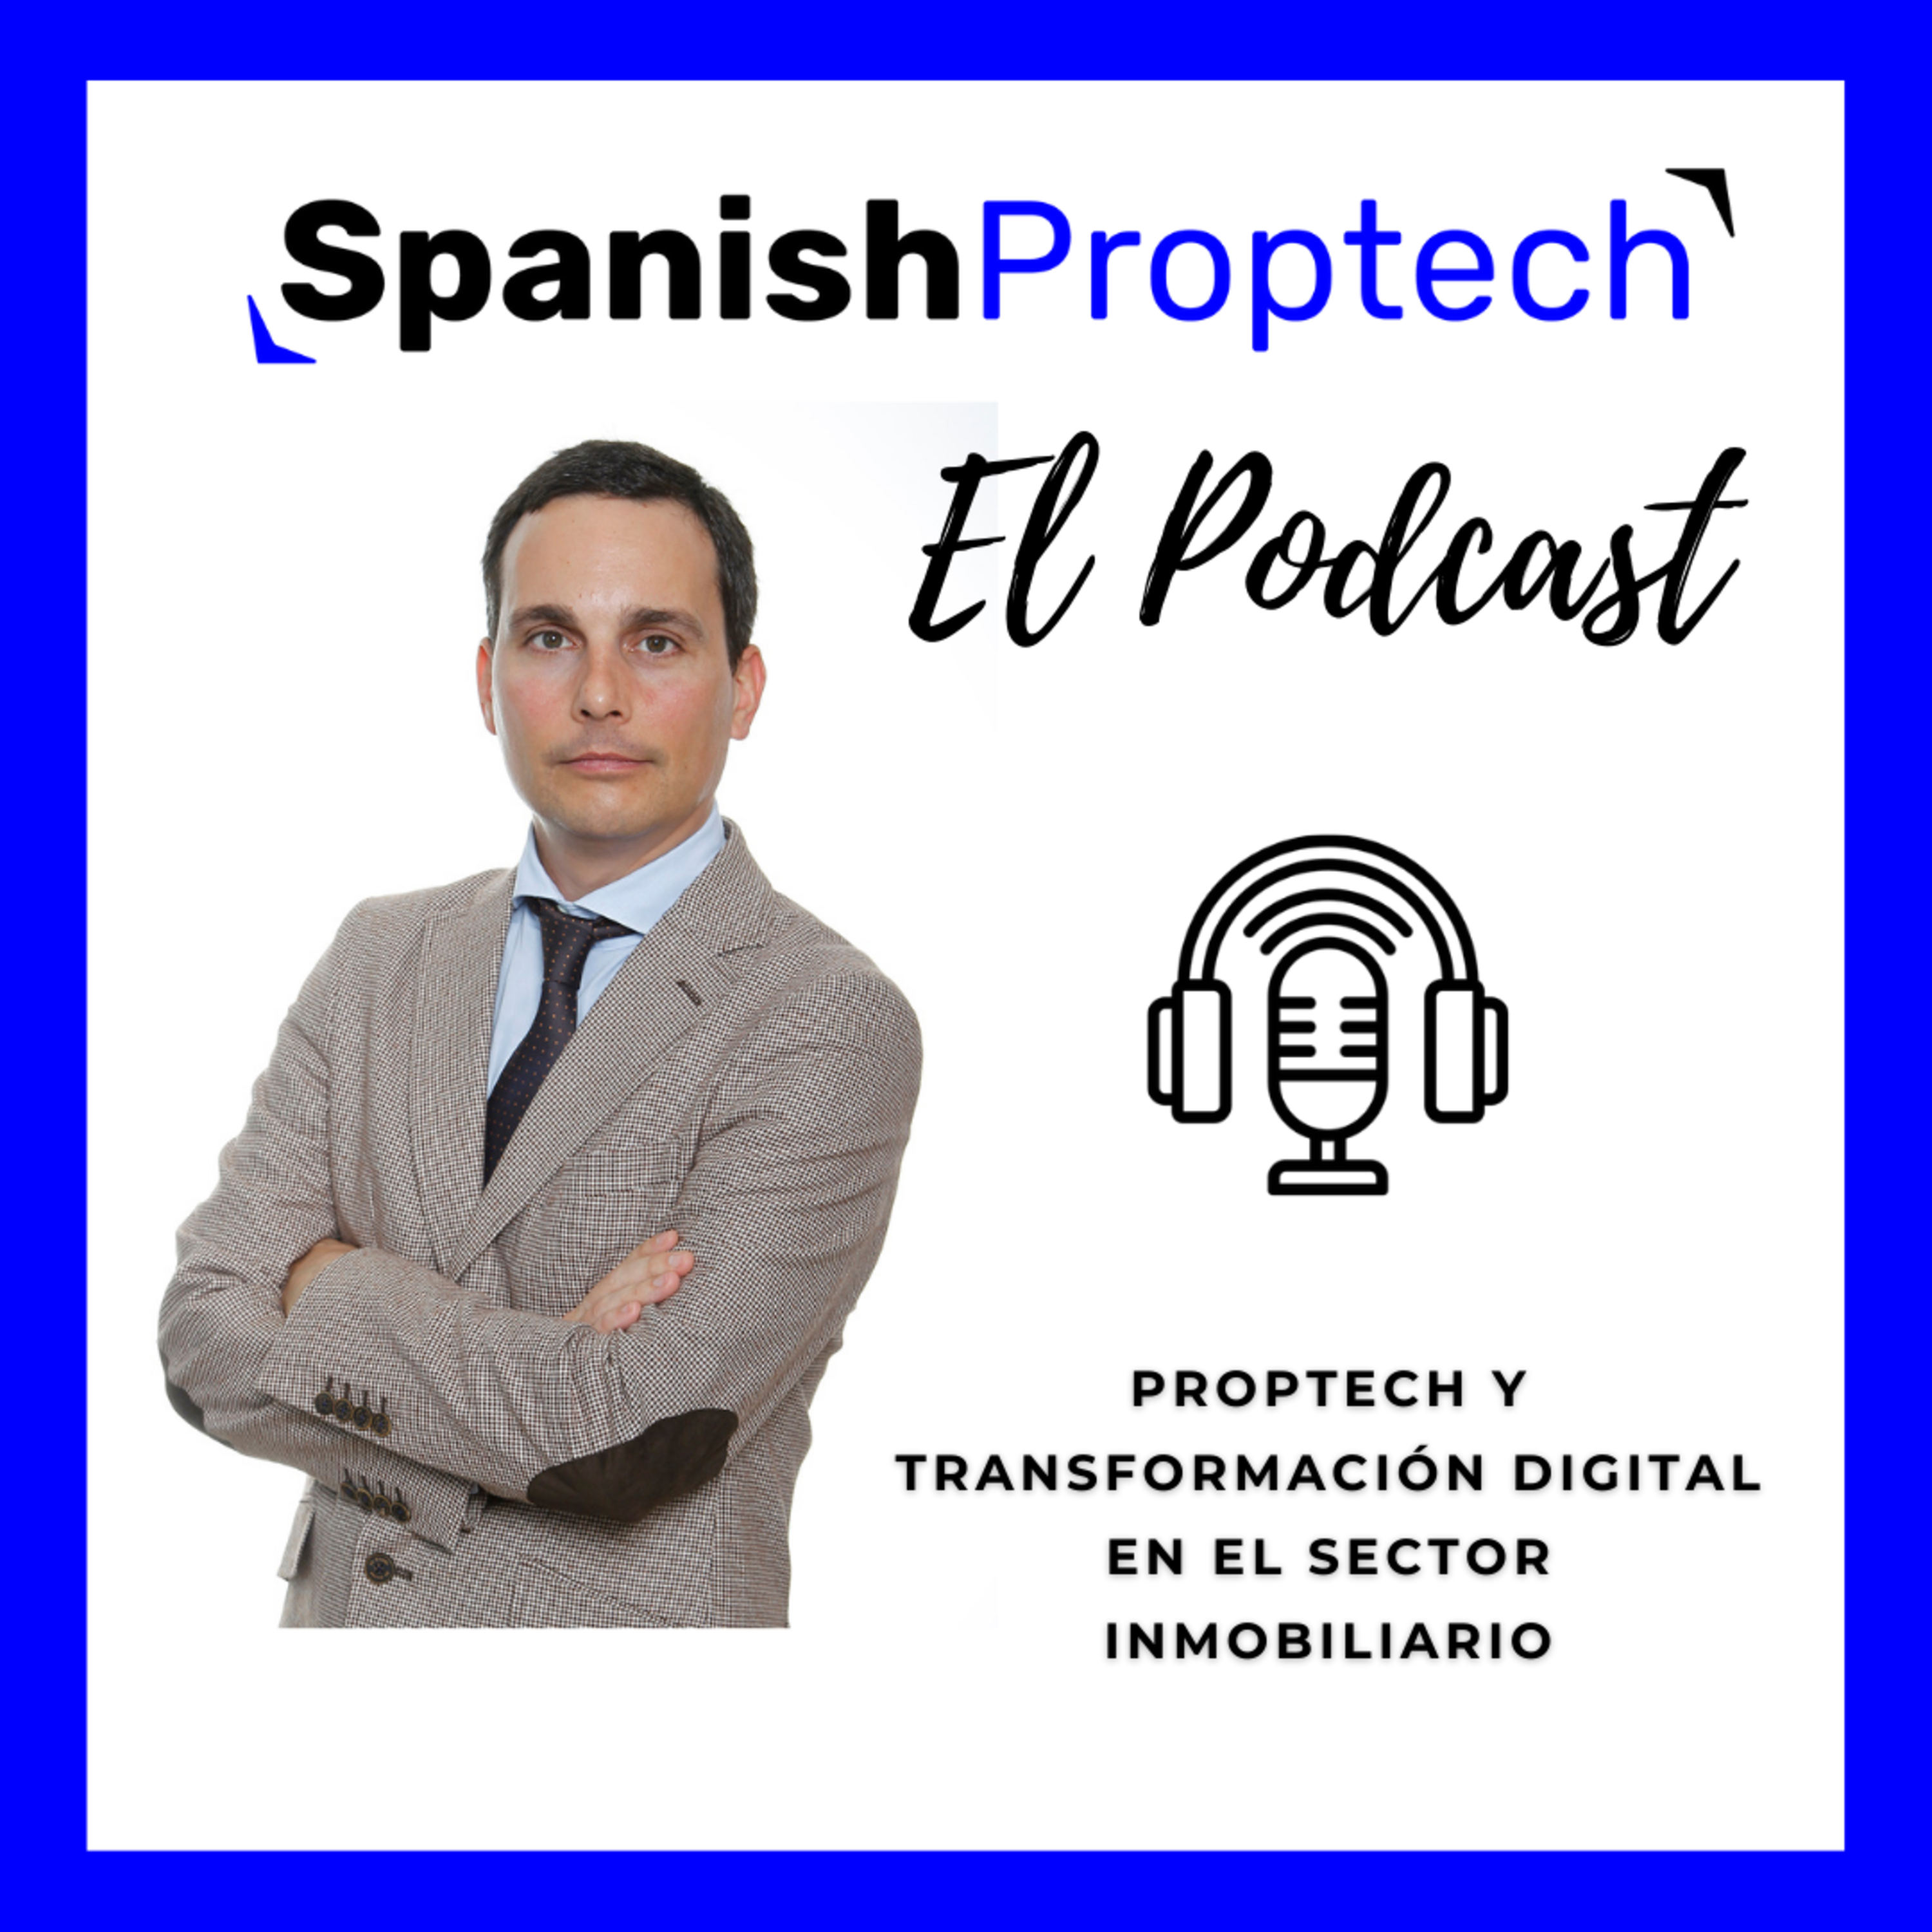 Spanish Proptech